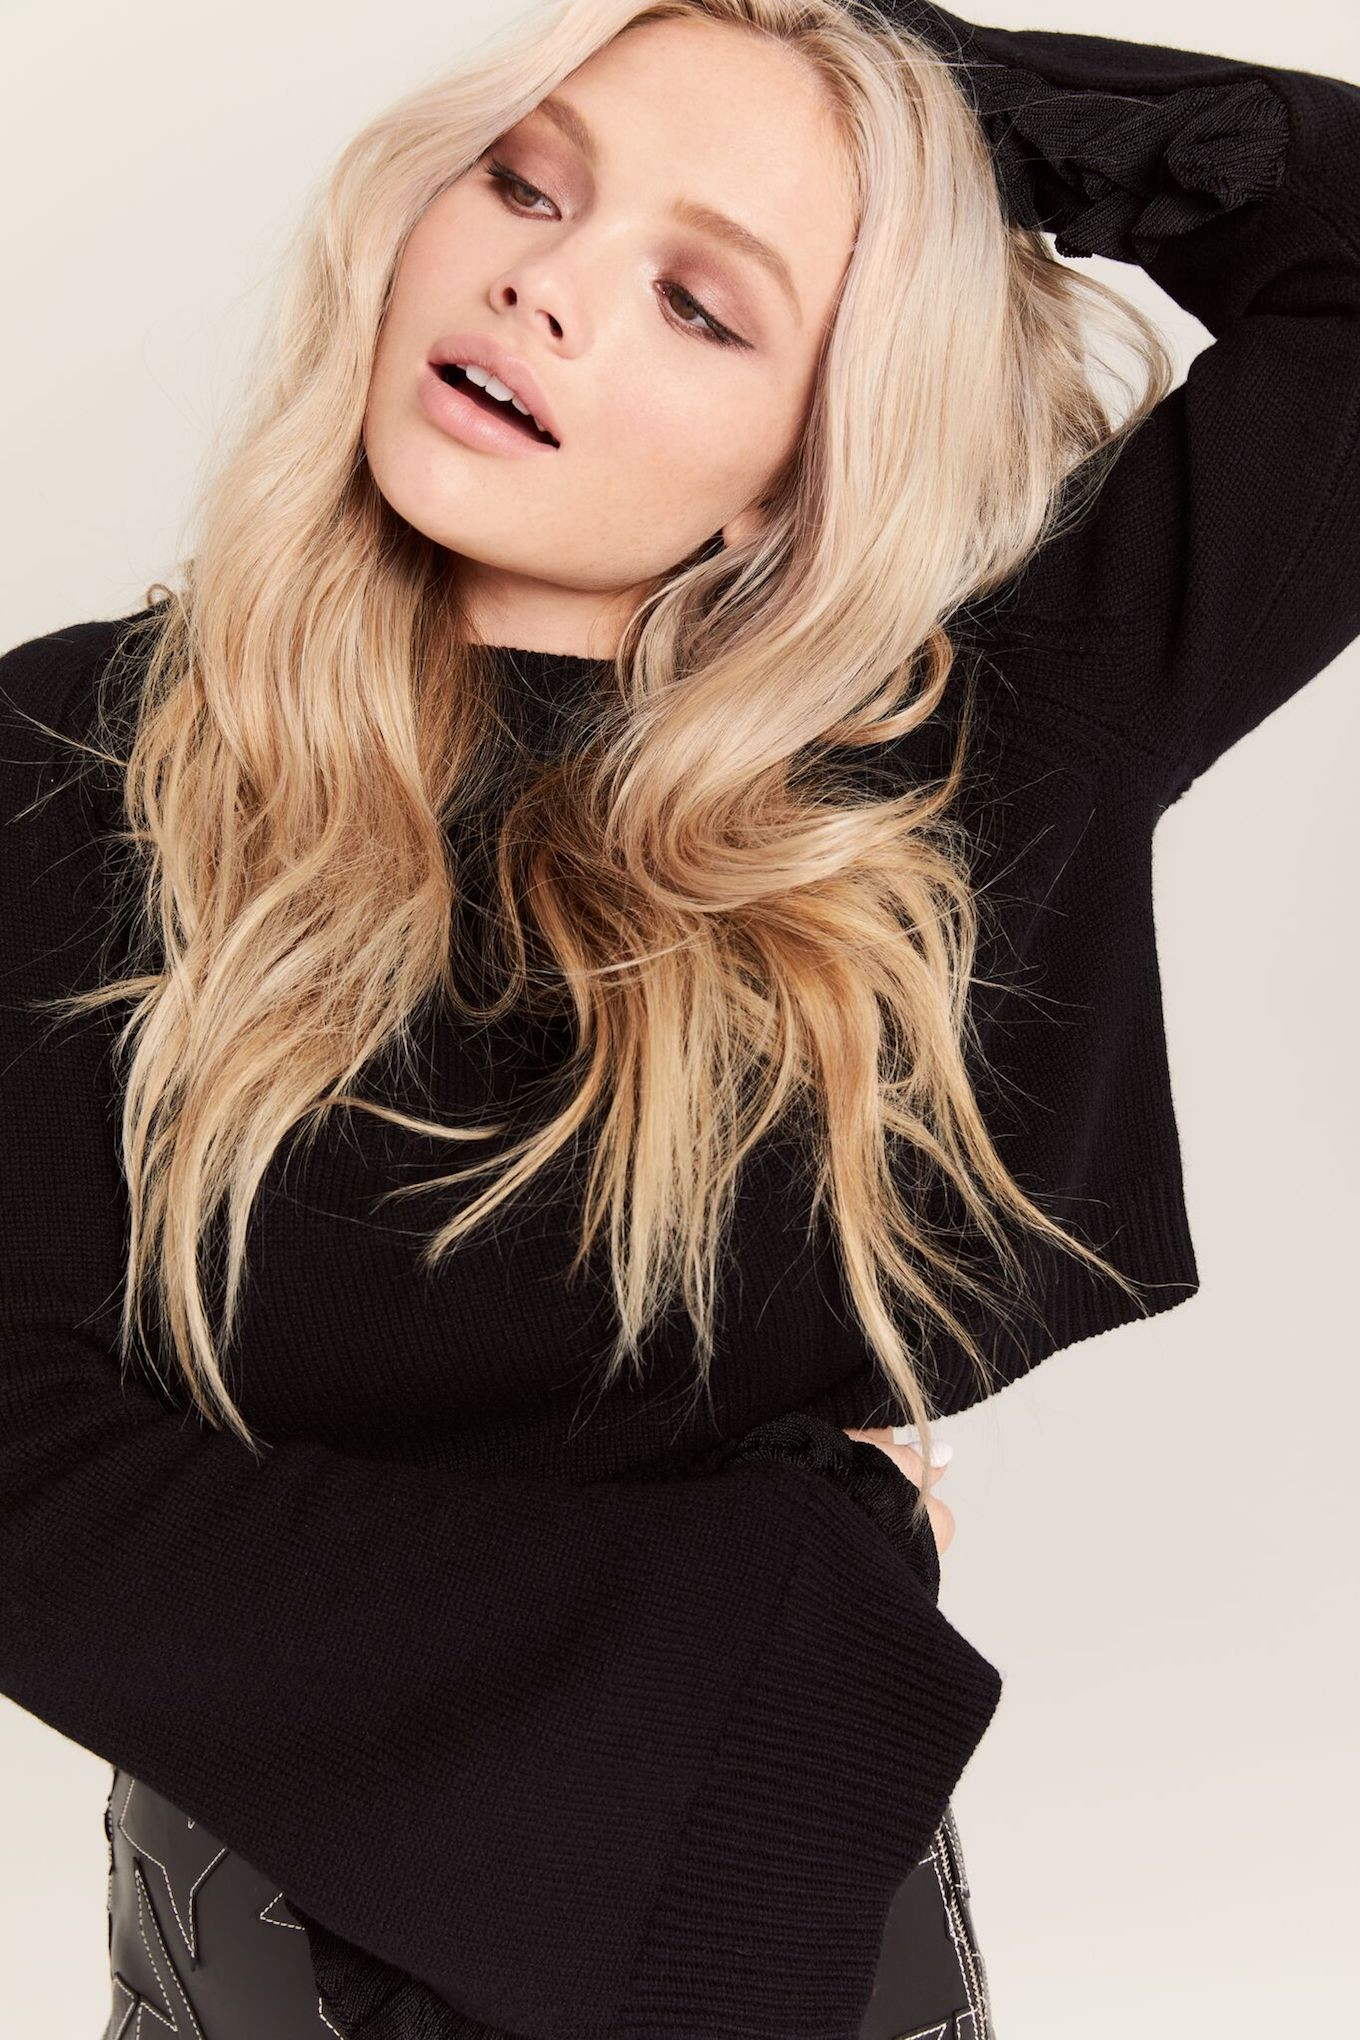 Natalie Alyn Lind Nude Naked Pics And Videos Imperiodefamosas